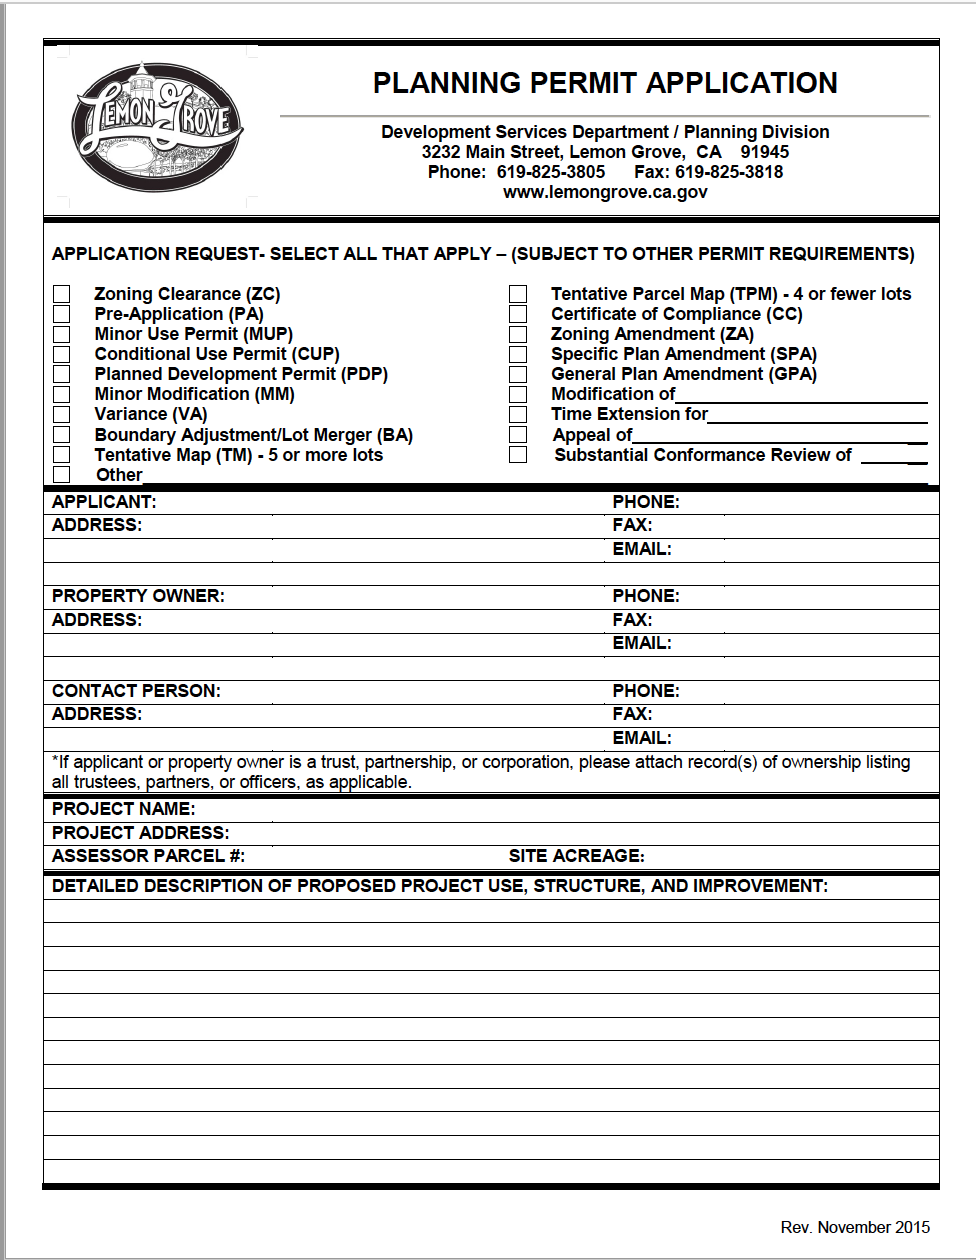 Planning Permit App.png